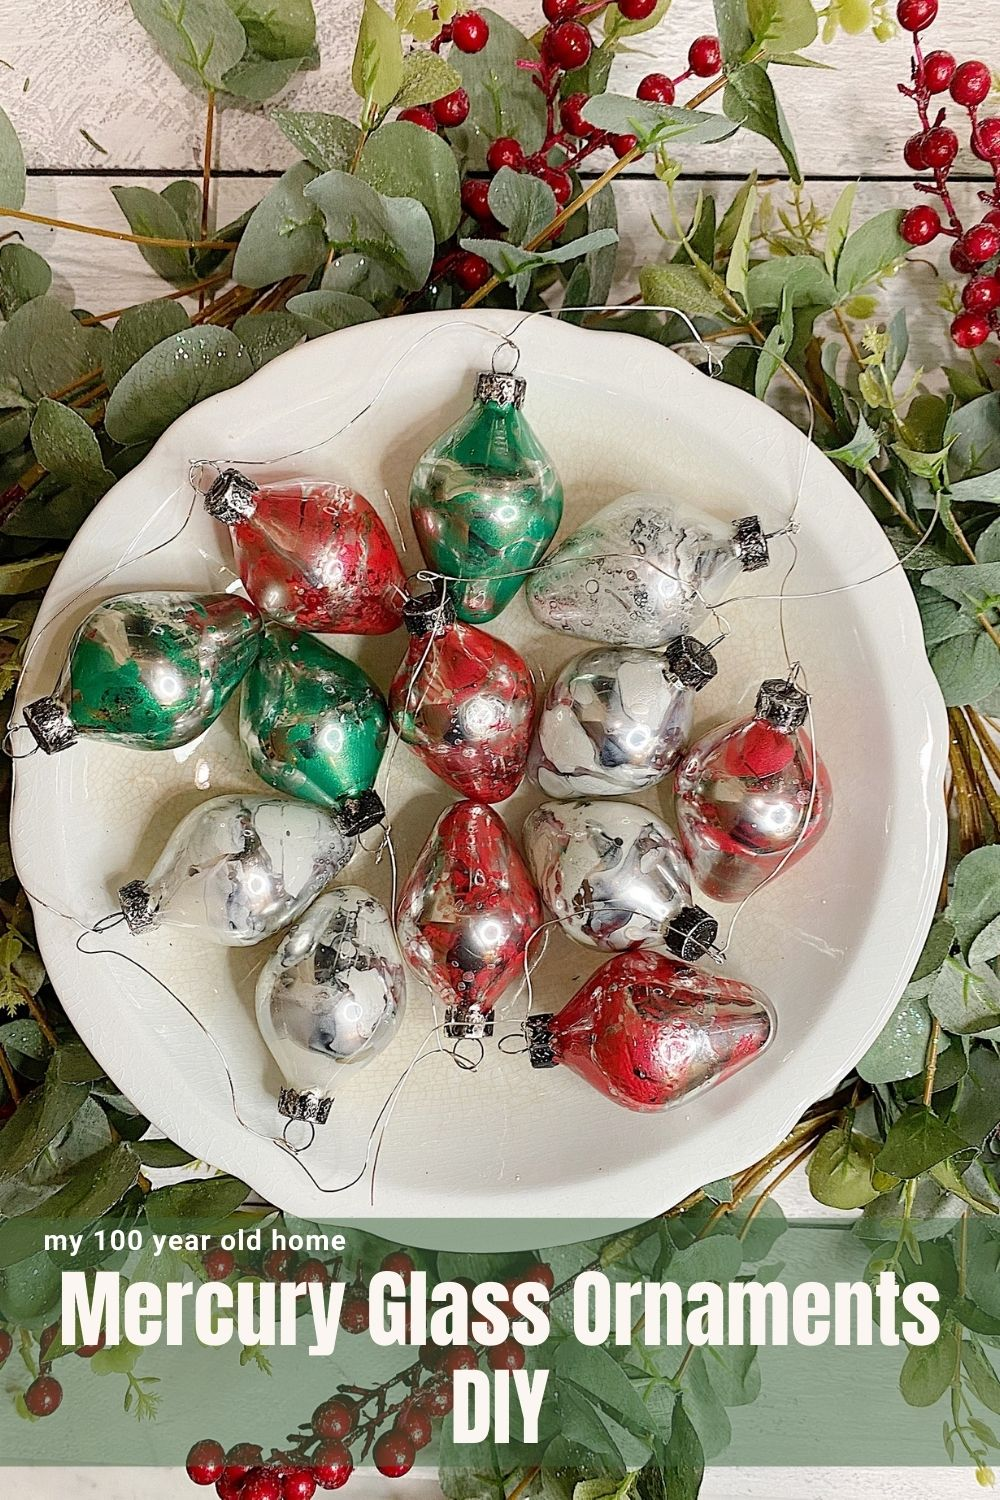 Mercury Glass Ornaments DIY